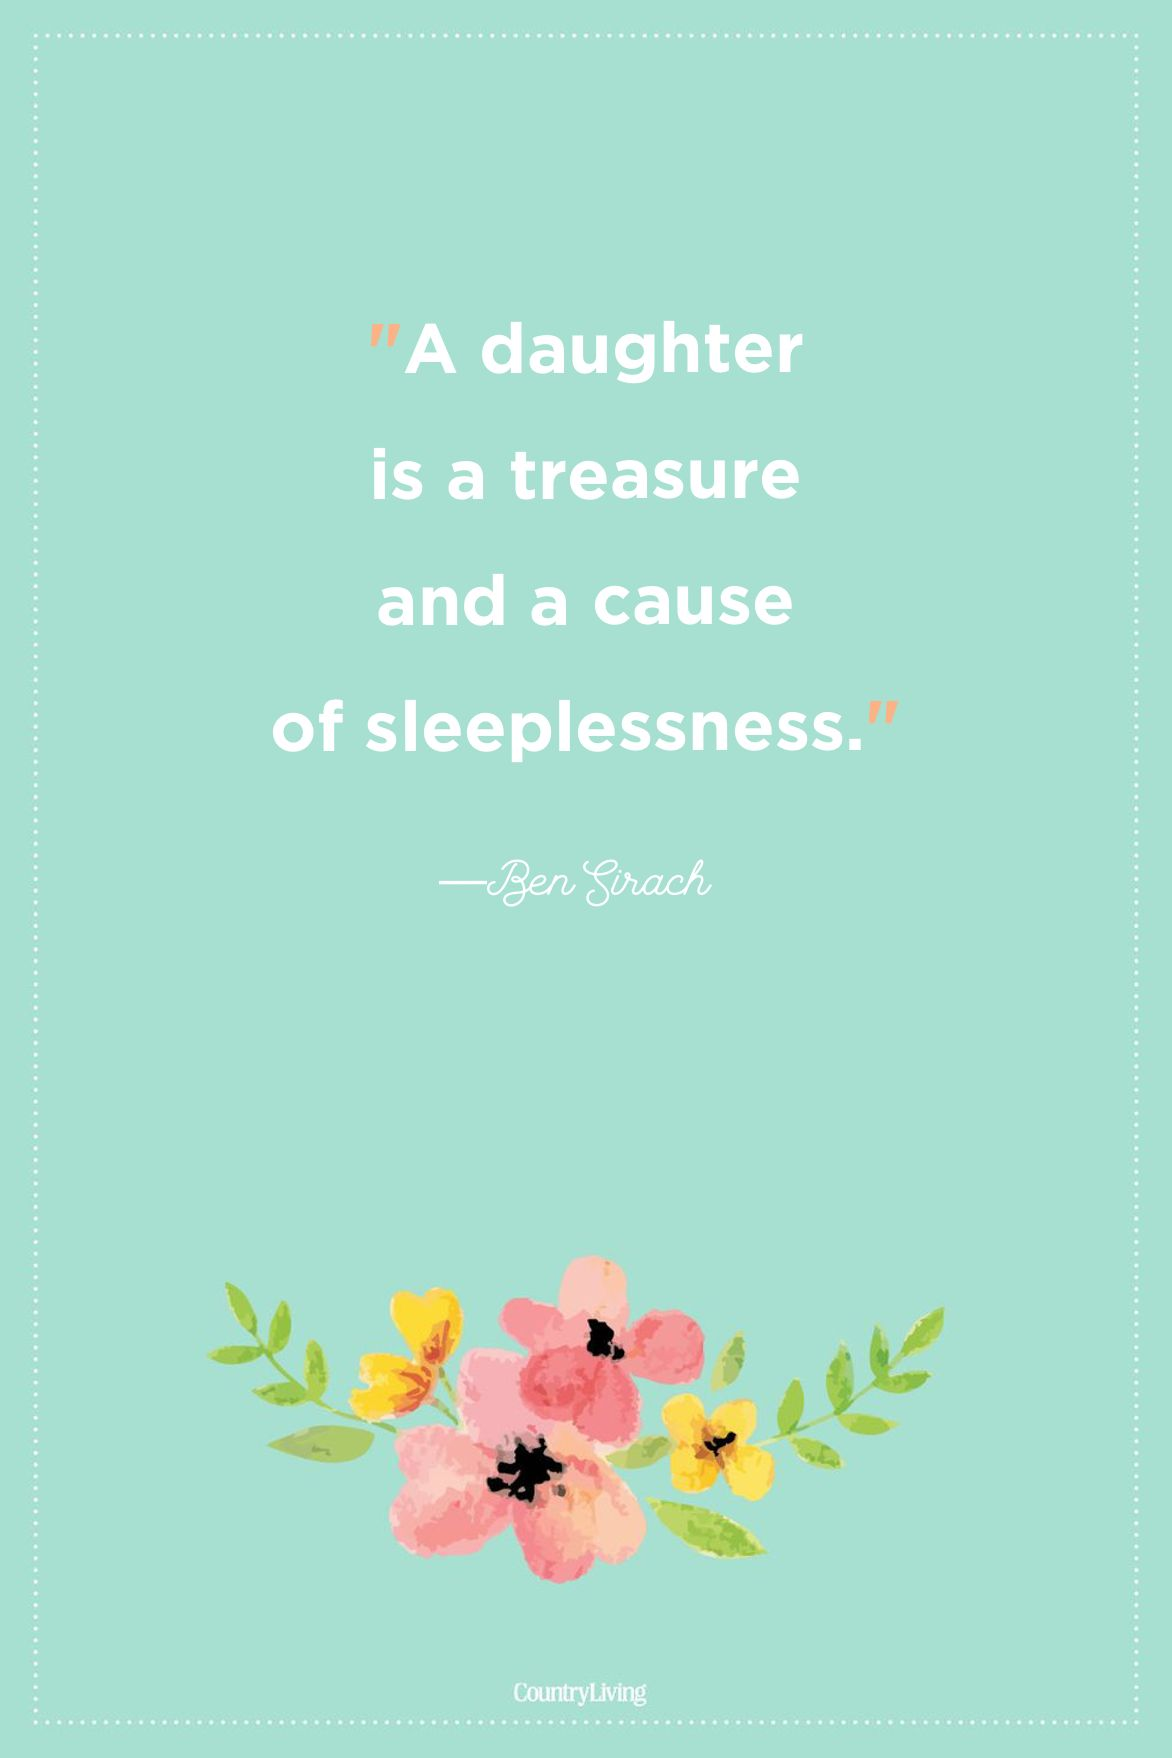 9 Best Mother and Daughter Quotes - Relationship Between Mom and